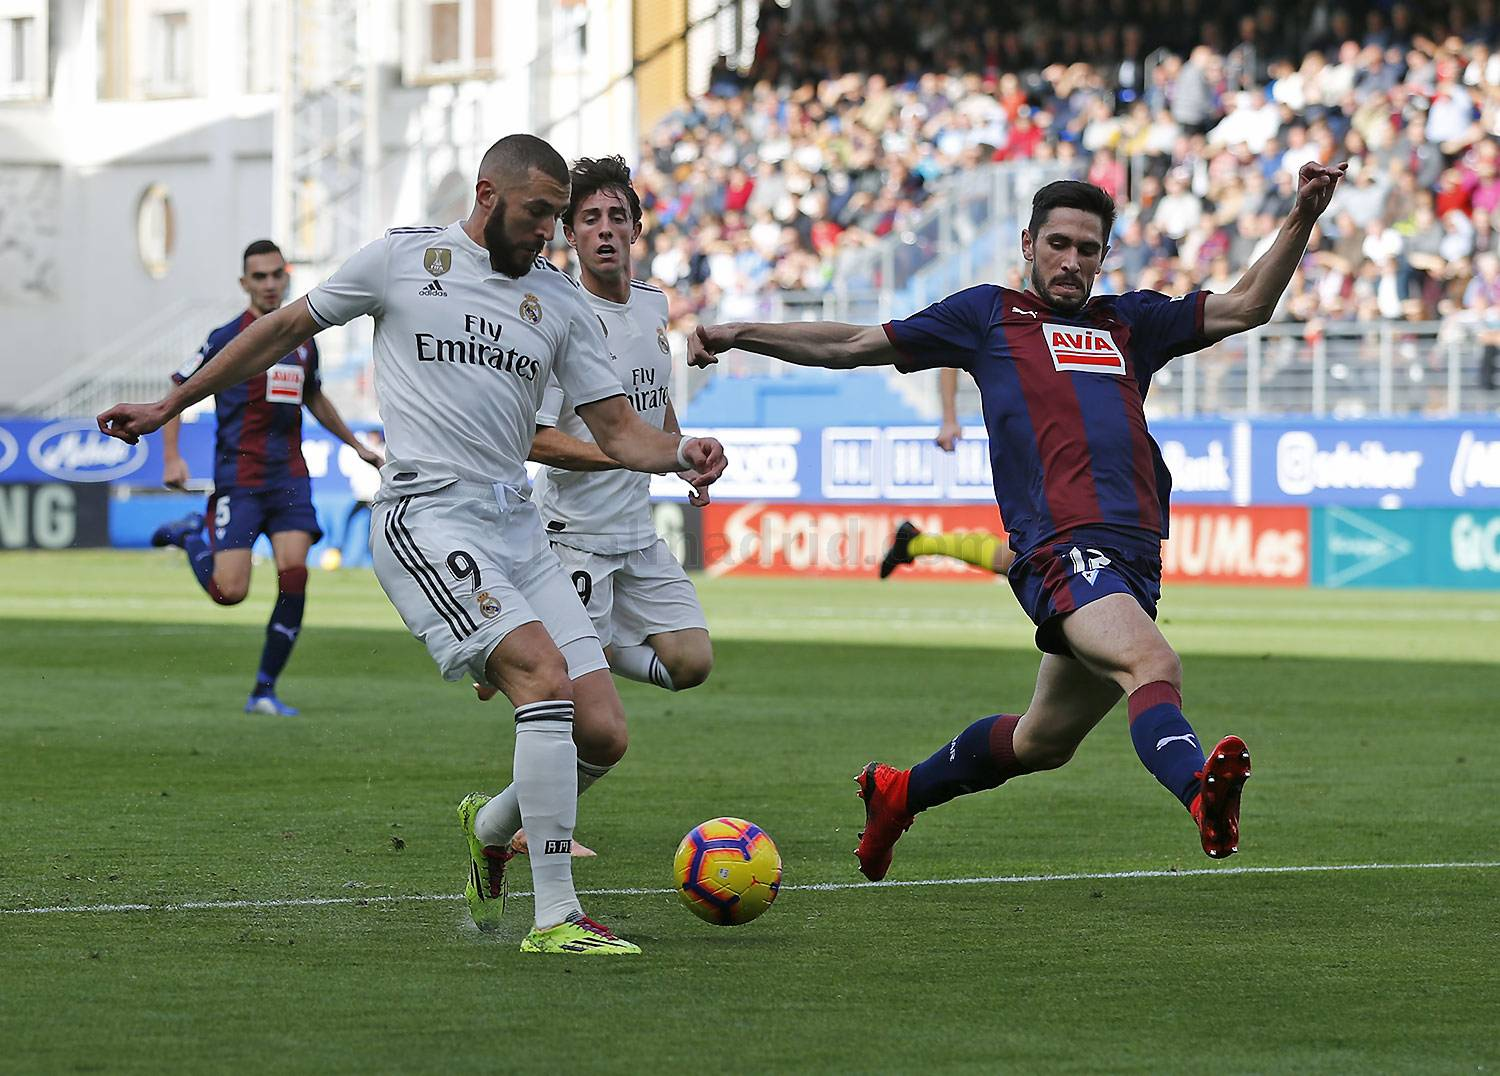 Real Madrid - Eibar - Real Madrid - 24-11-2018